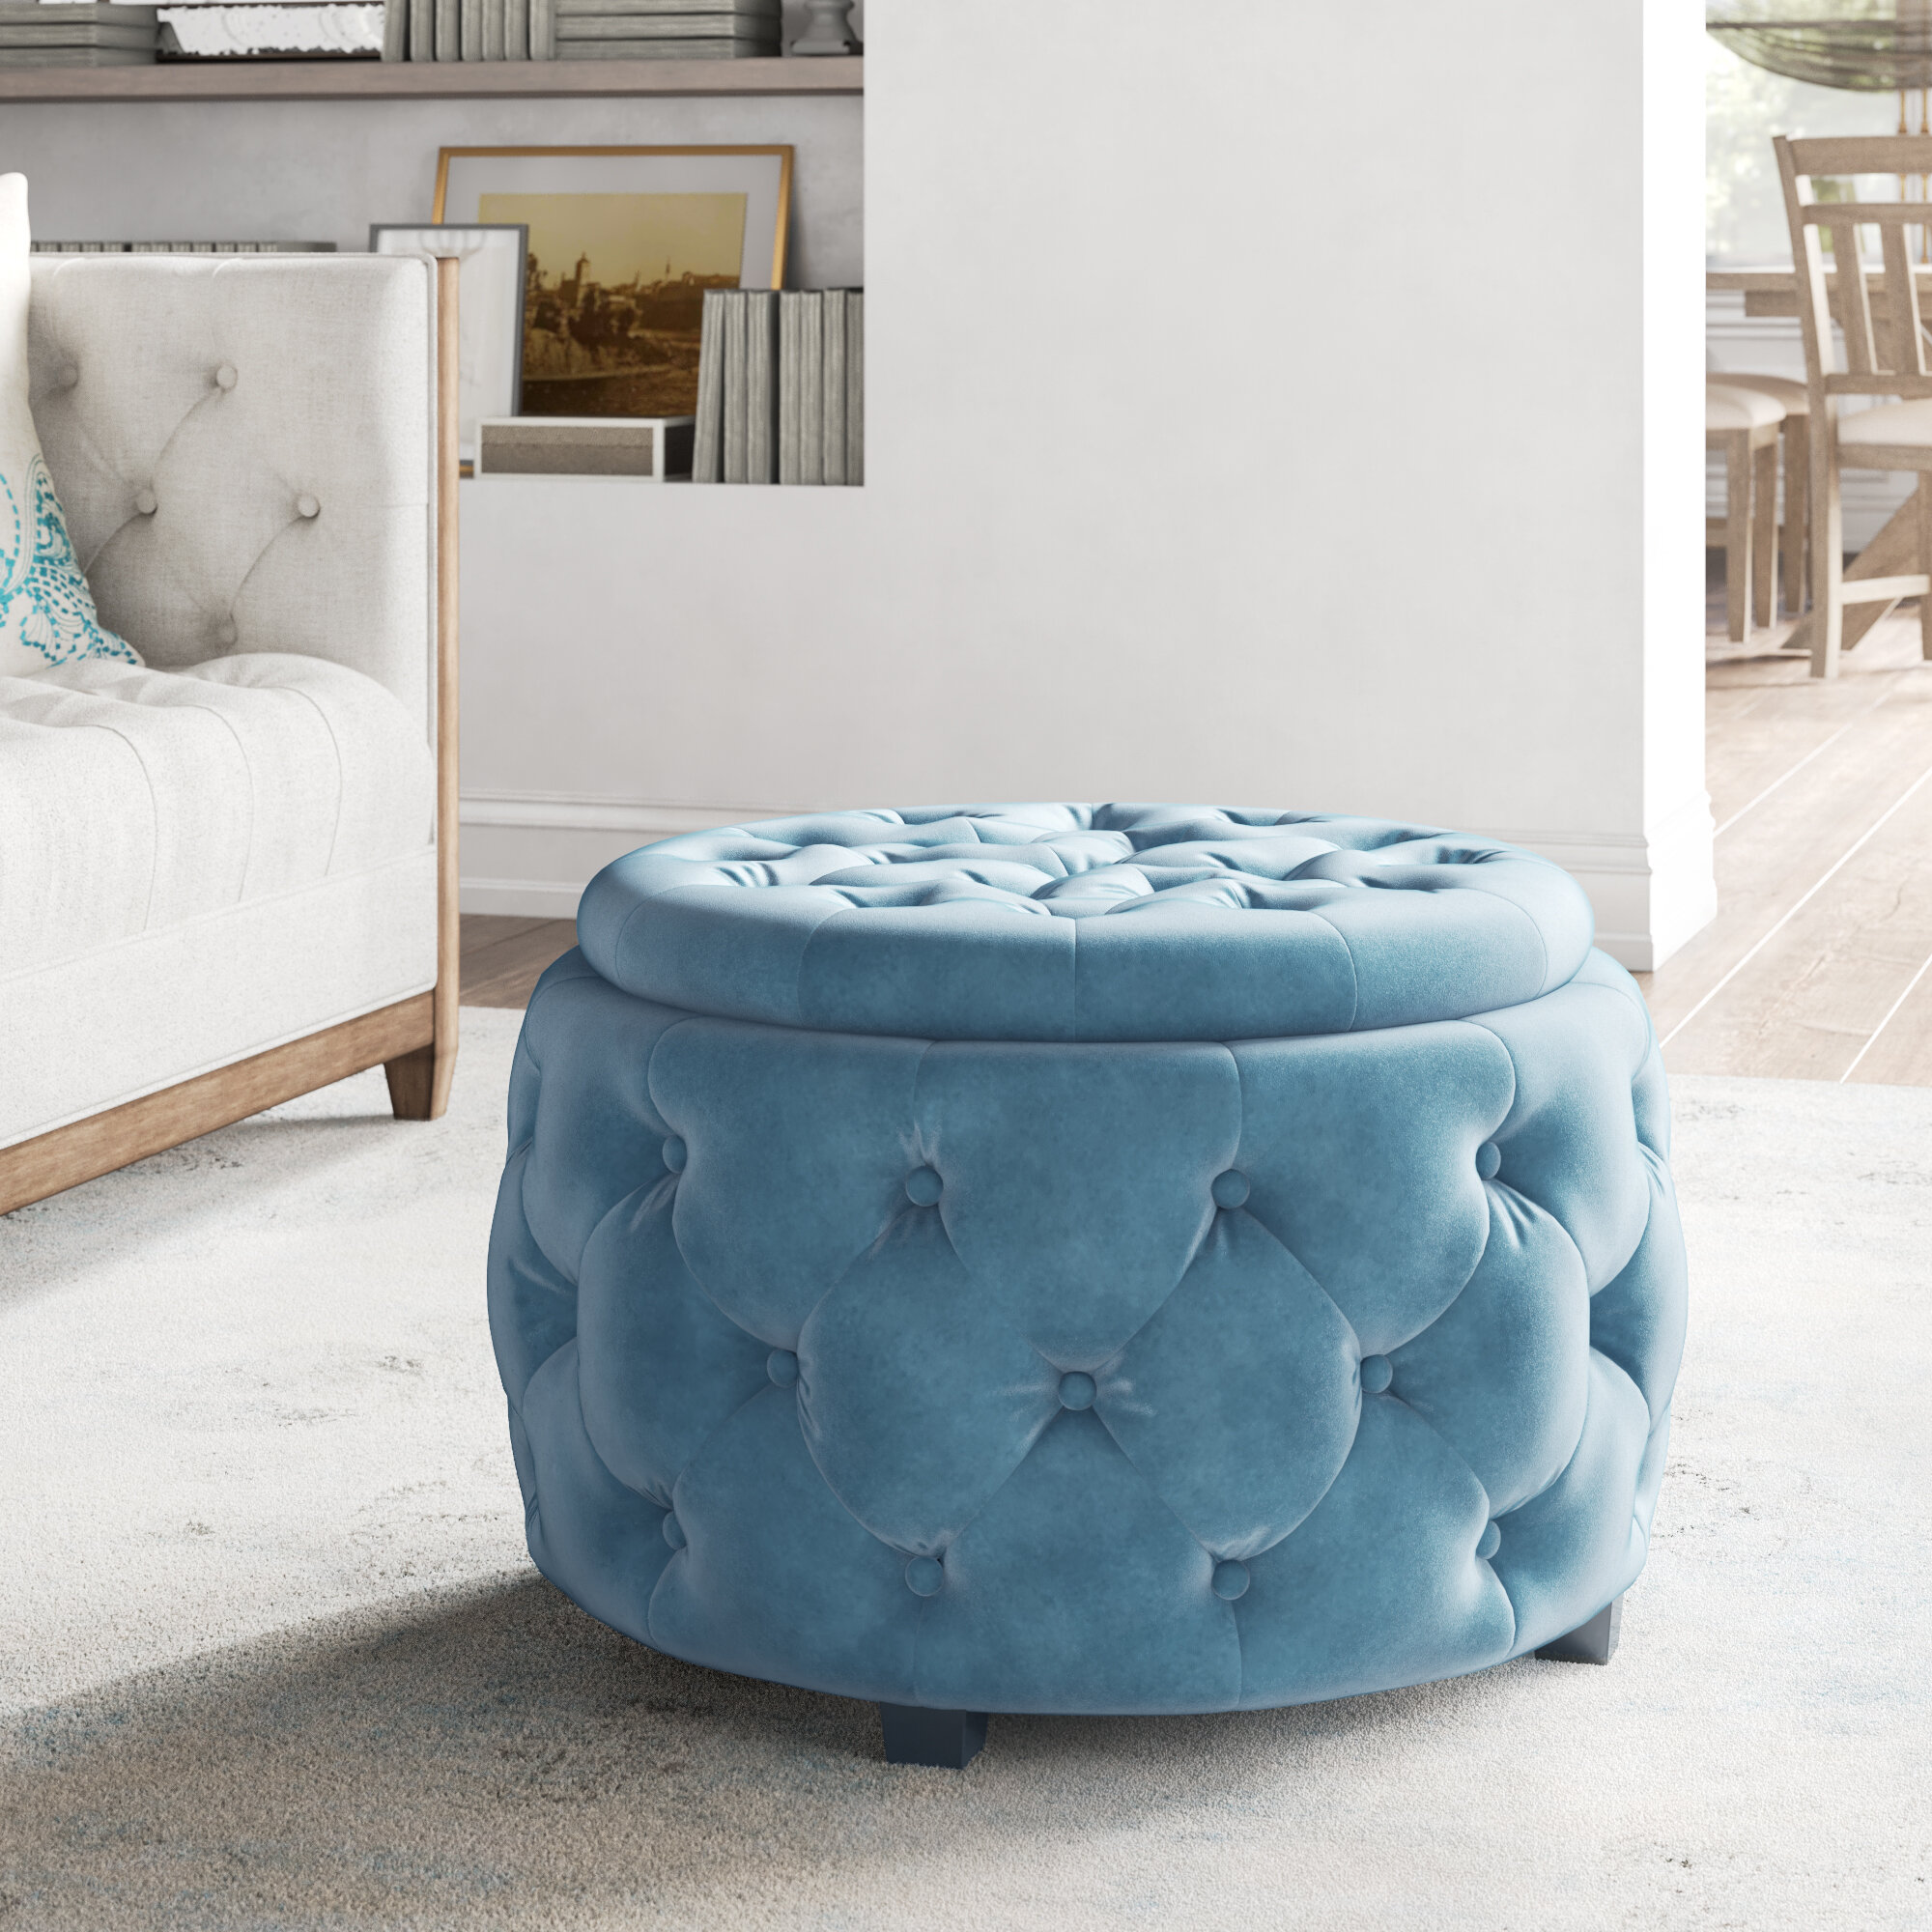 Blue Storage Ottomans Poufs You Ll Love In 2021 Wayfair